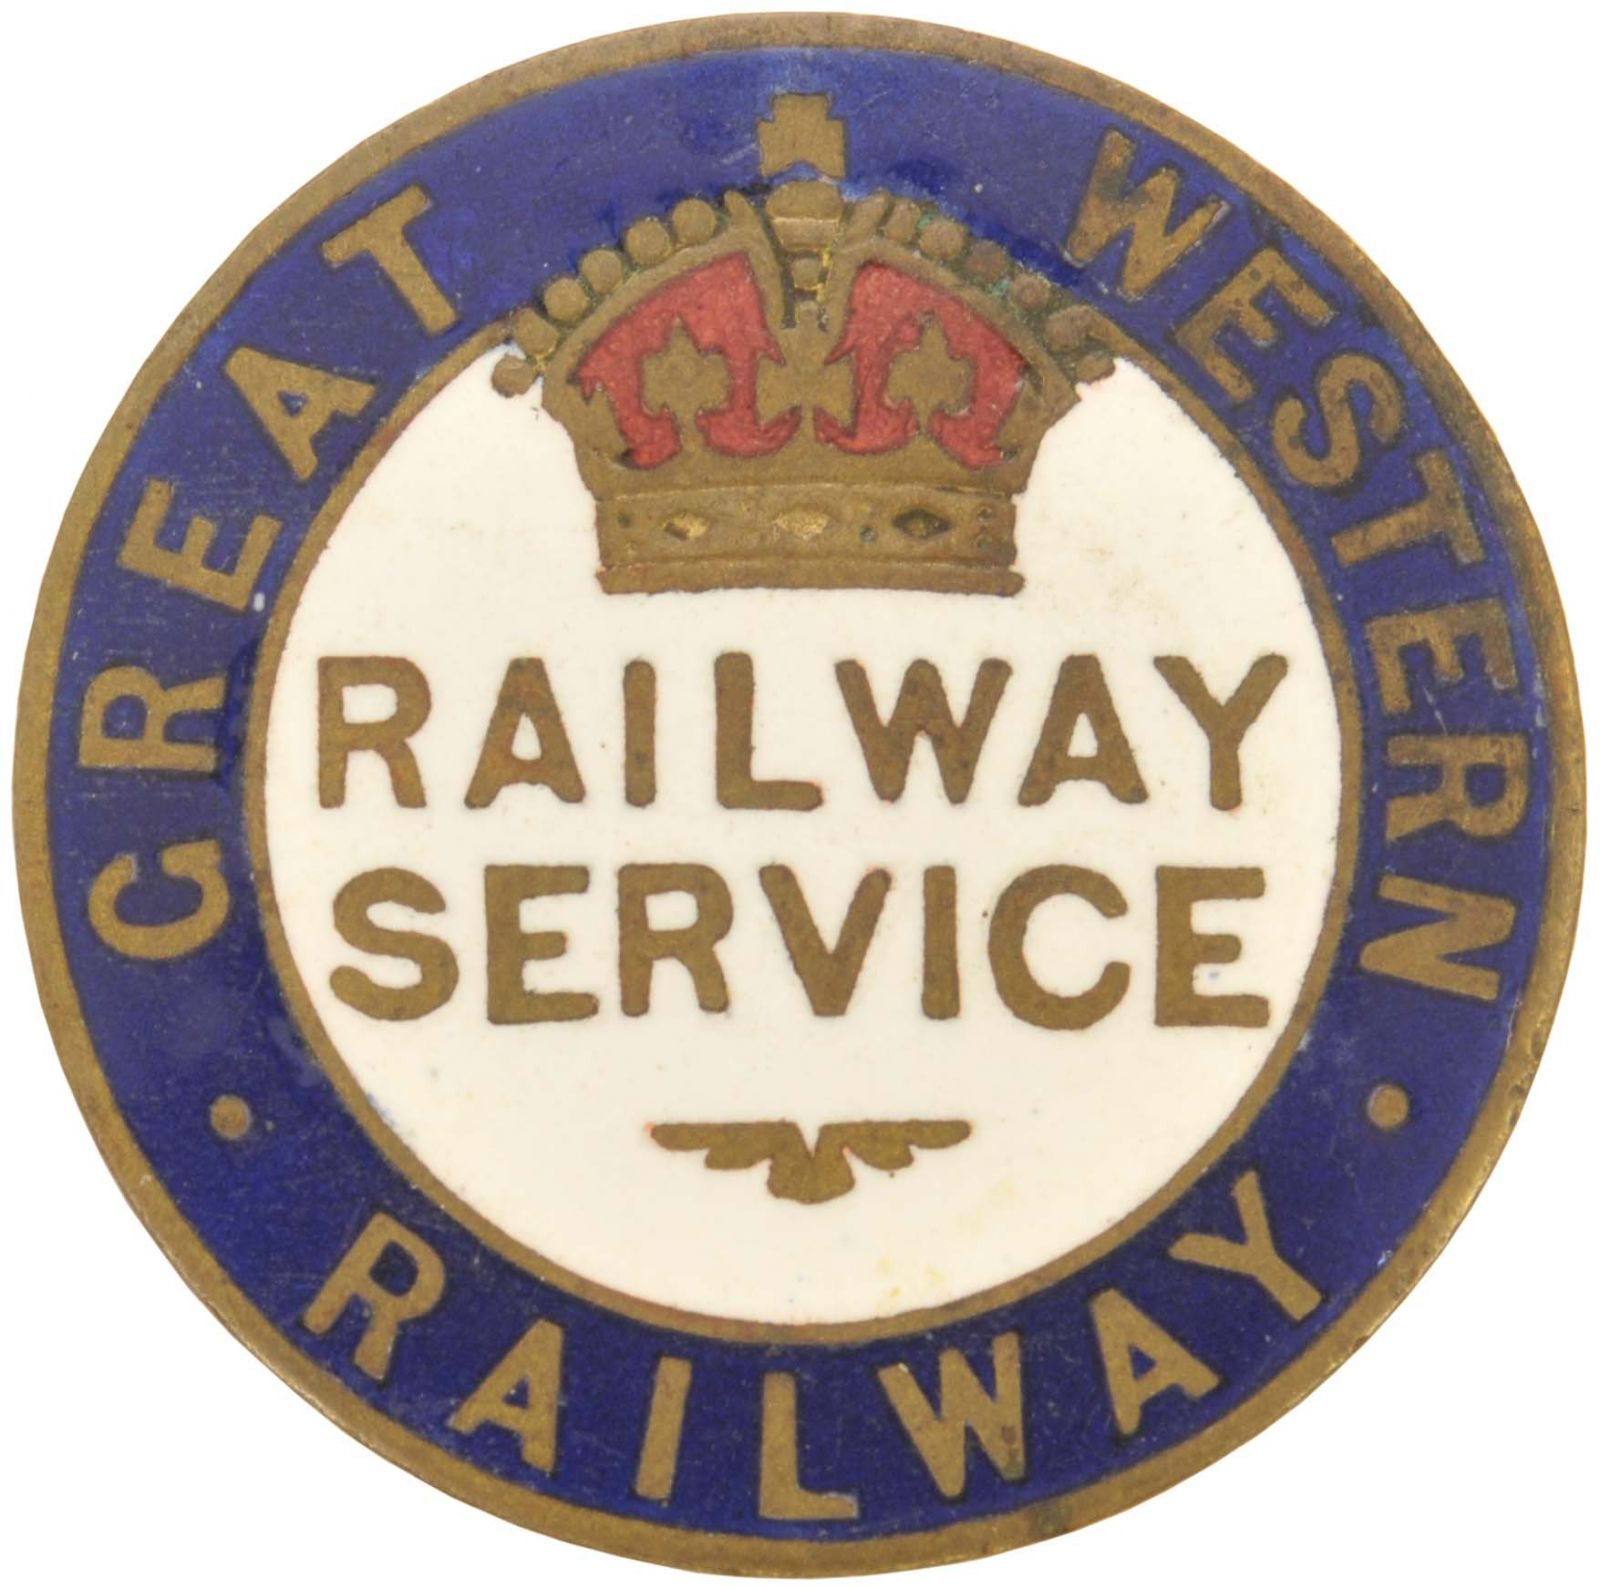 Lot 41 - Railway Badges, GWR, 1WW: A GWR, Railway Service badge, issued to staff in reserved occupations